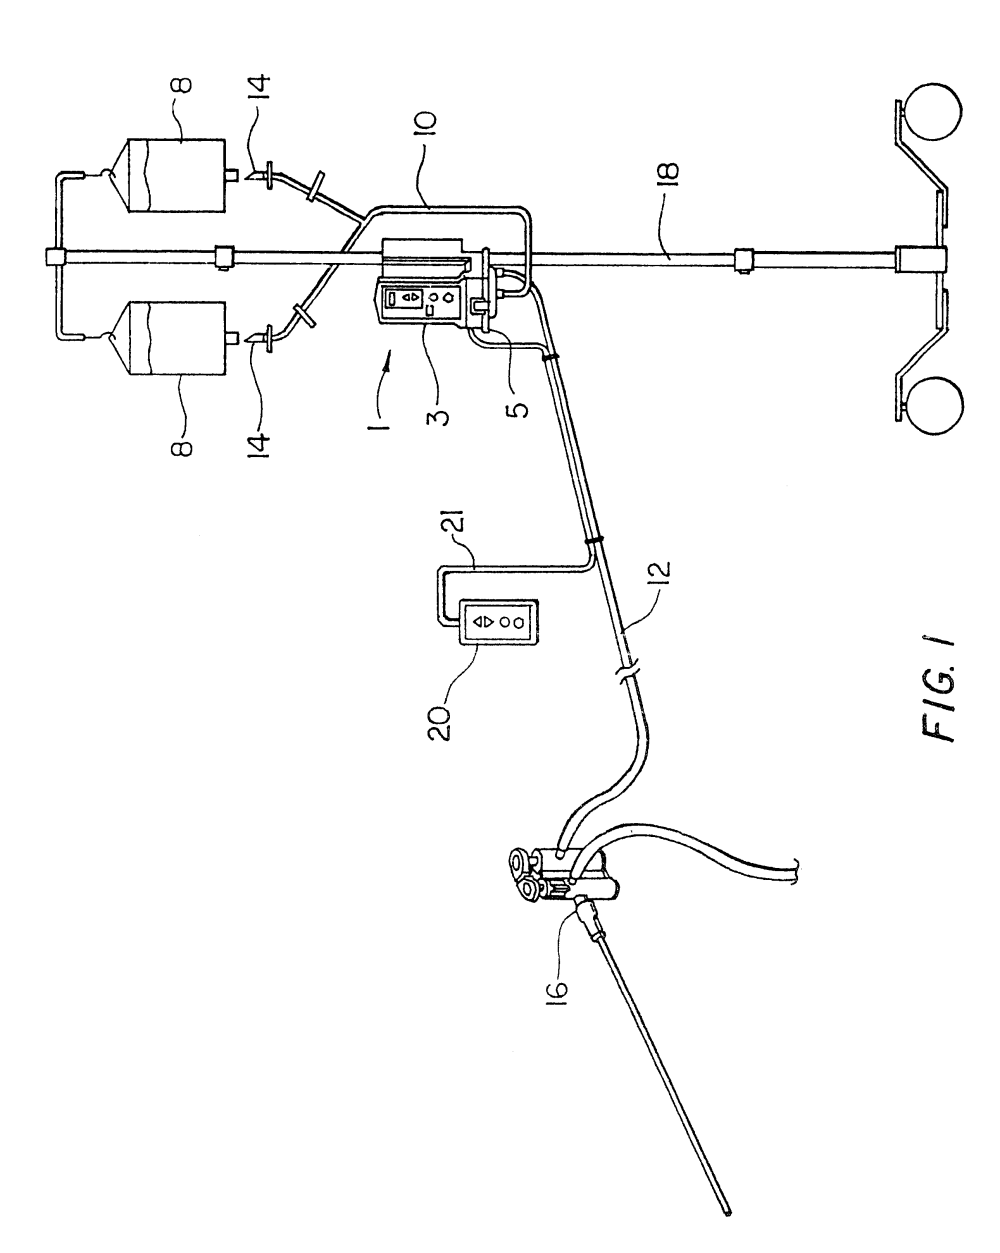 medium resolution of irrigation pump and system google patents on wiring a irrigation pump